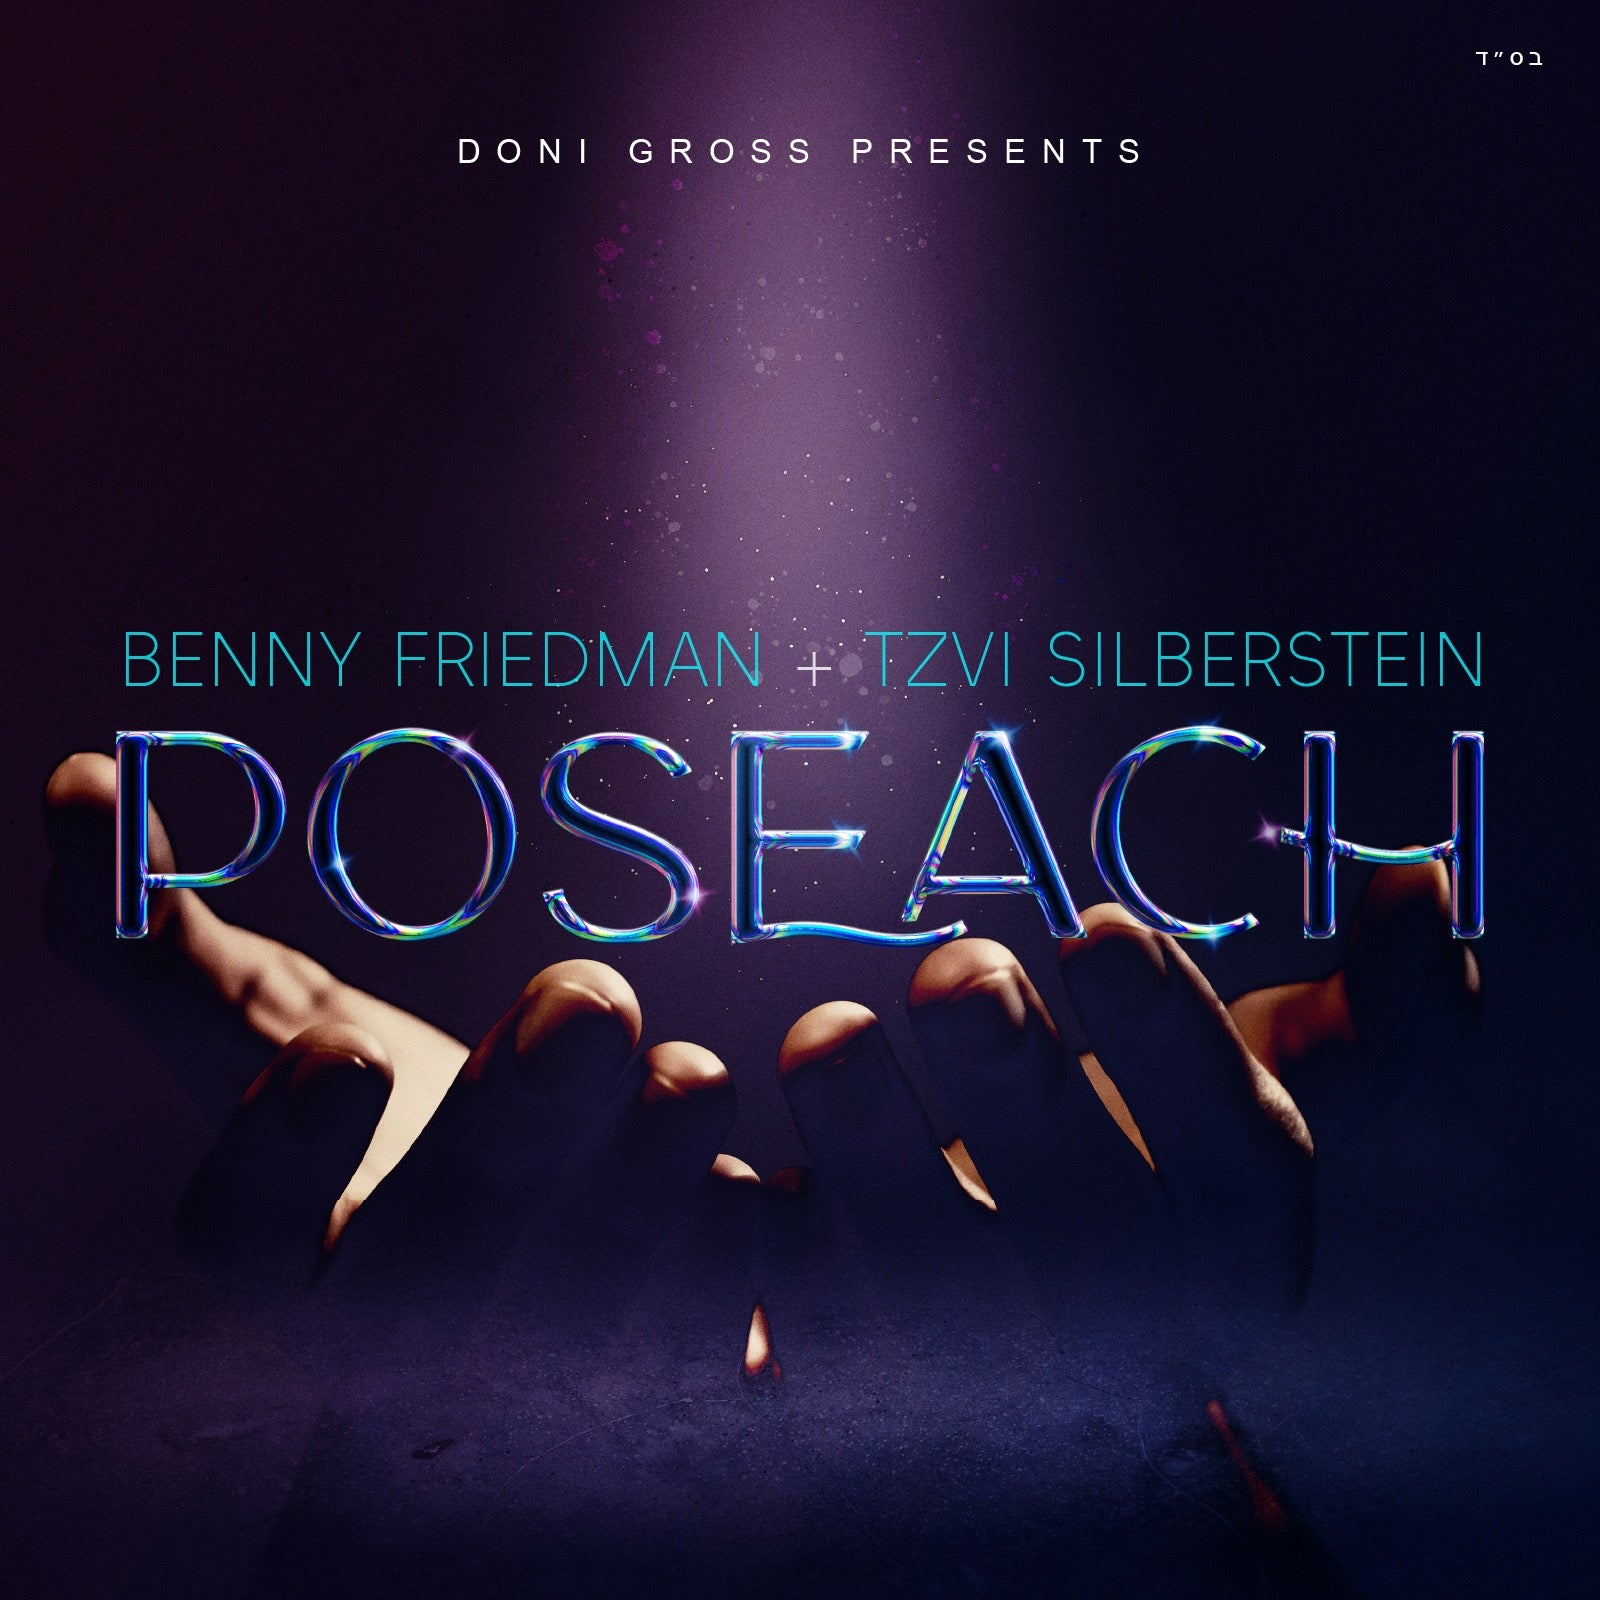 Benny Friedman & Tzvi Silberstein - Poseach (single)